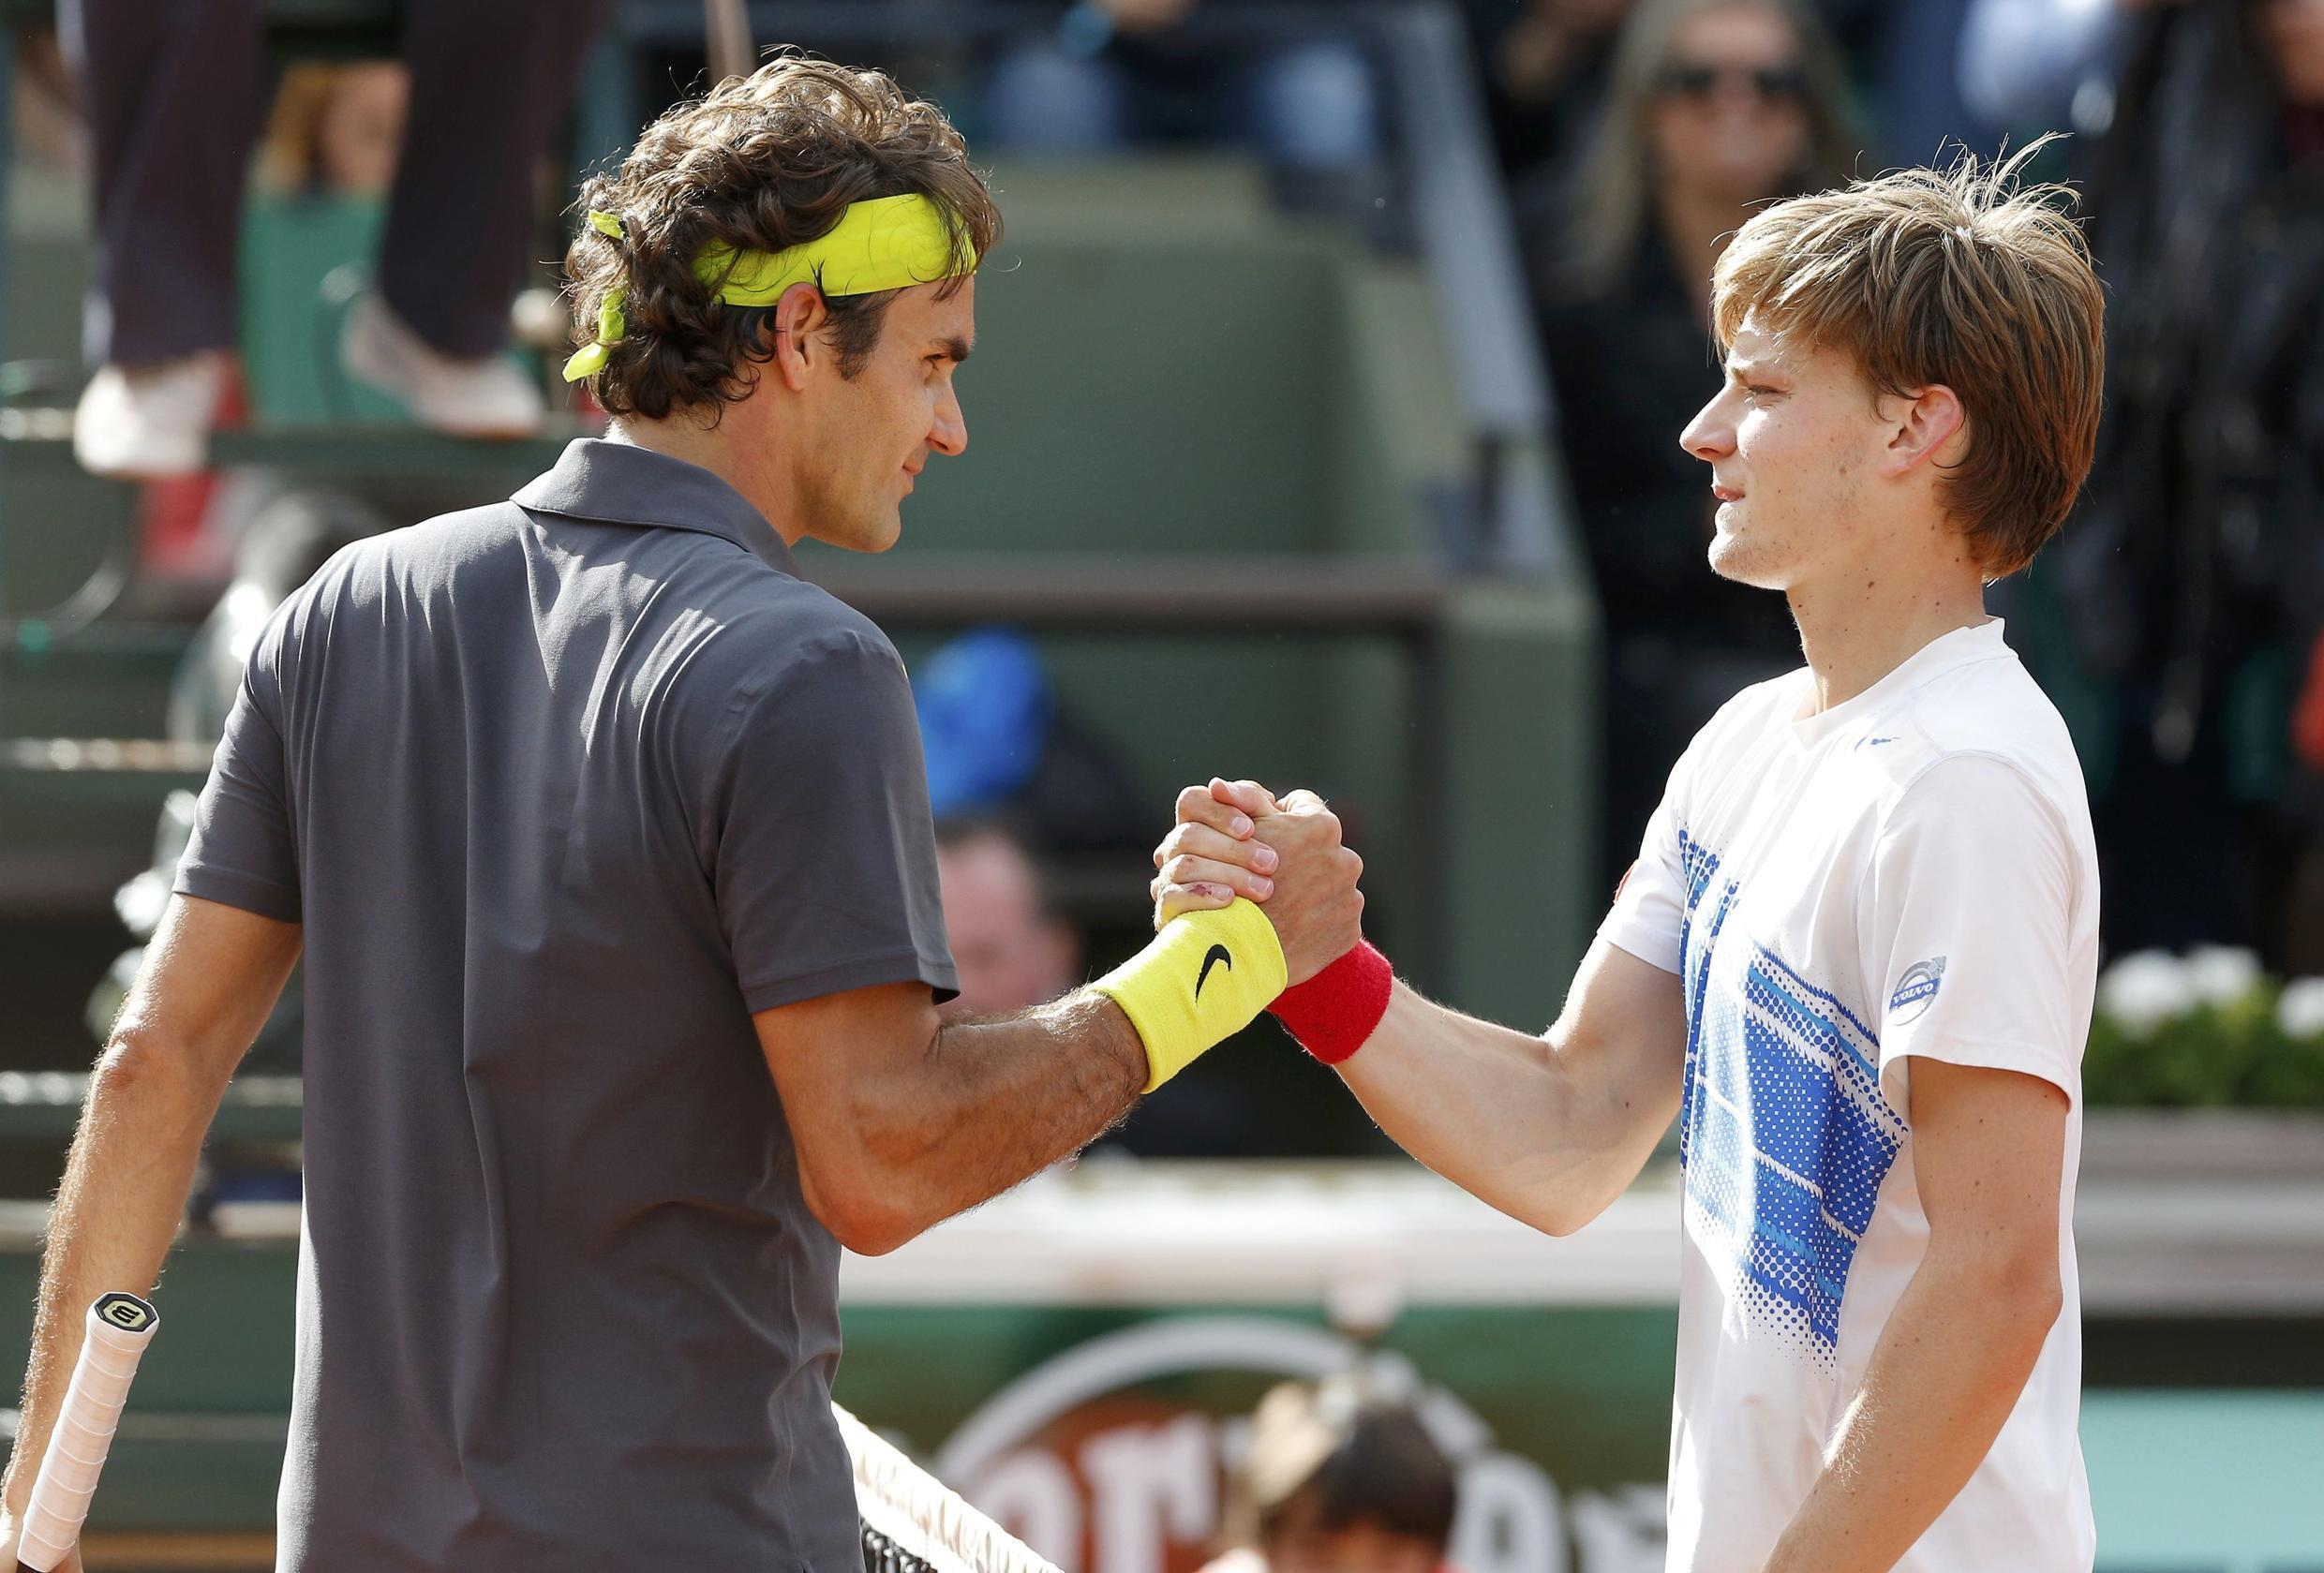 Roger Federer of Switzerland (L) shakes hands with David Goffin of Belgium after winning his match during the French Open